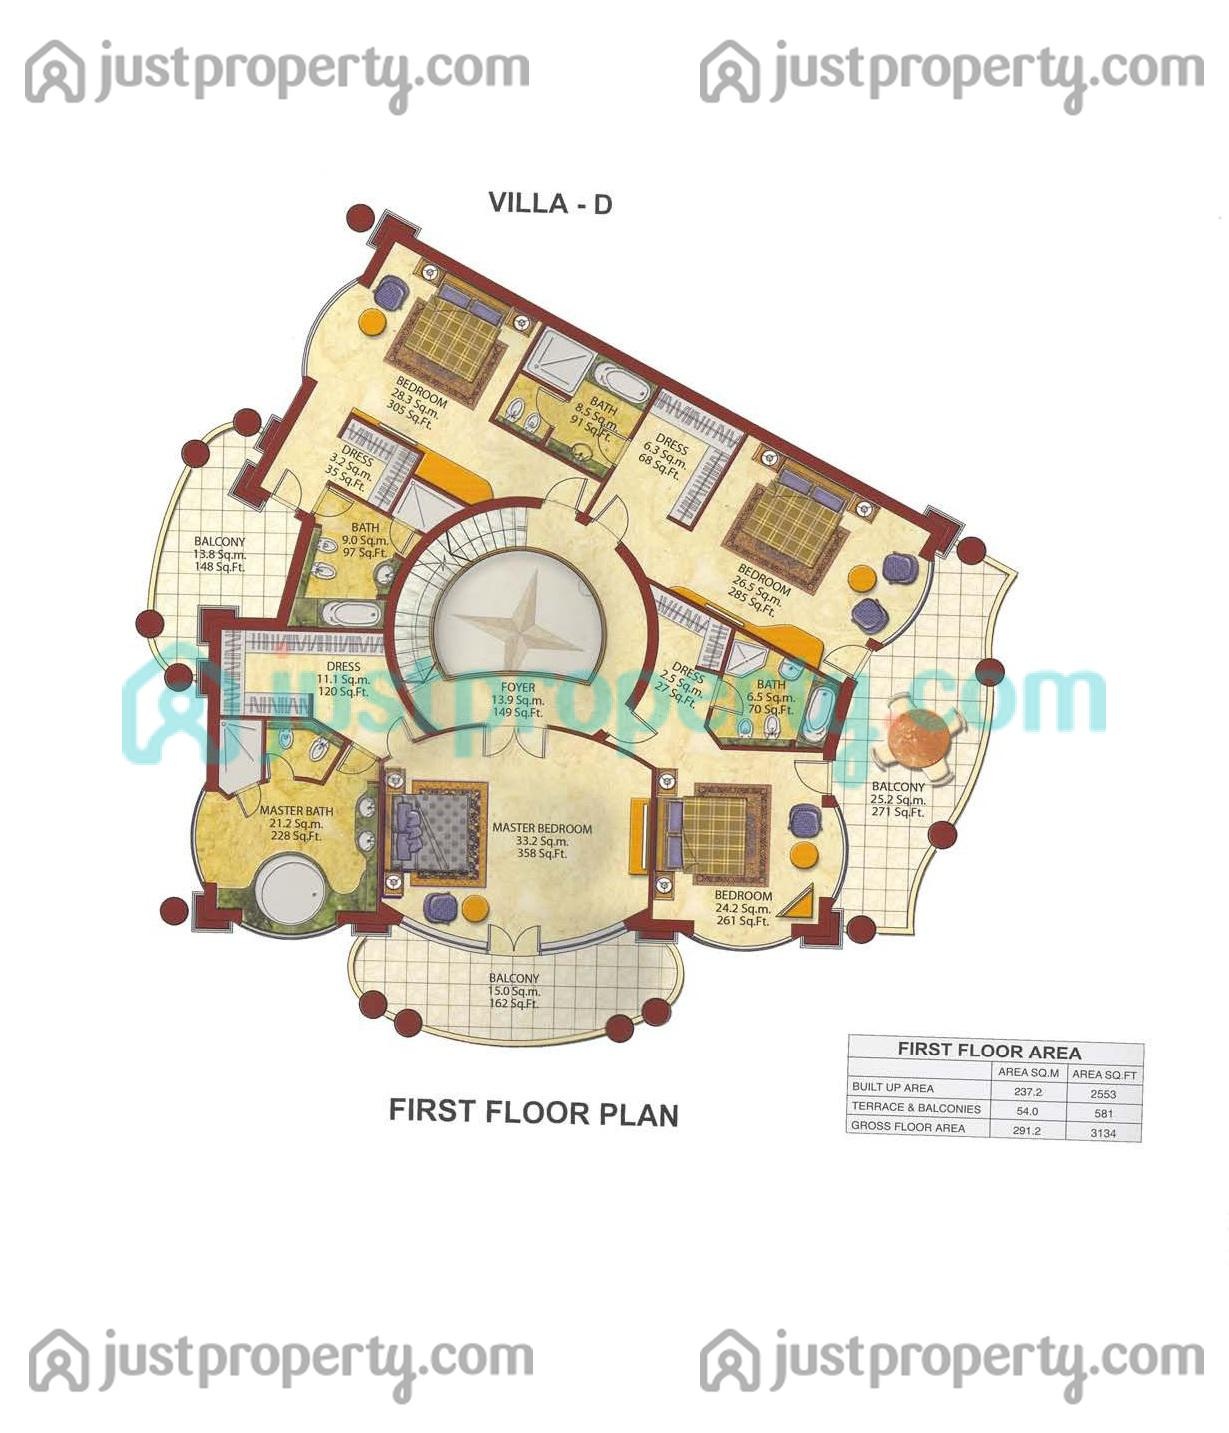 Palm Jumeirah Floor Plans Villas Floor Plans Justproperty Com